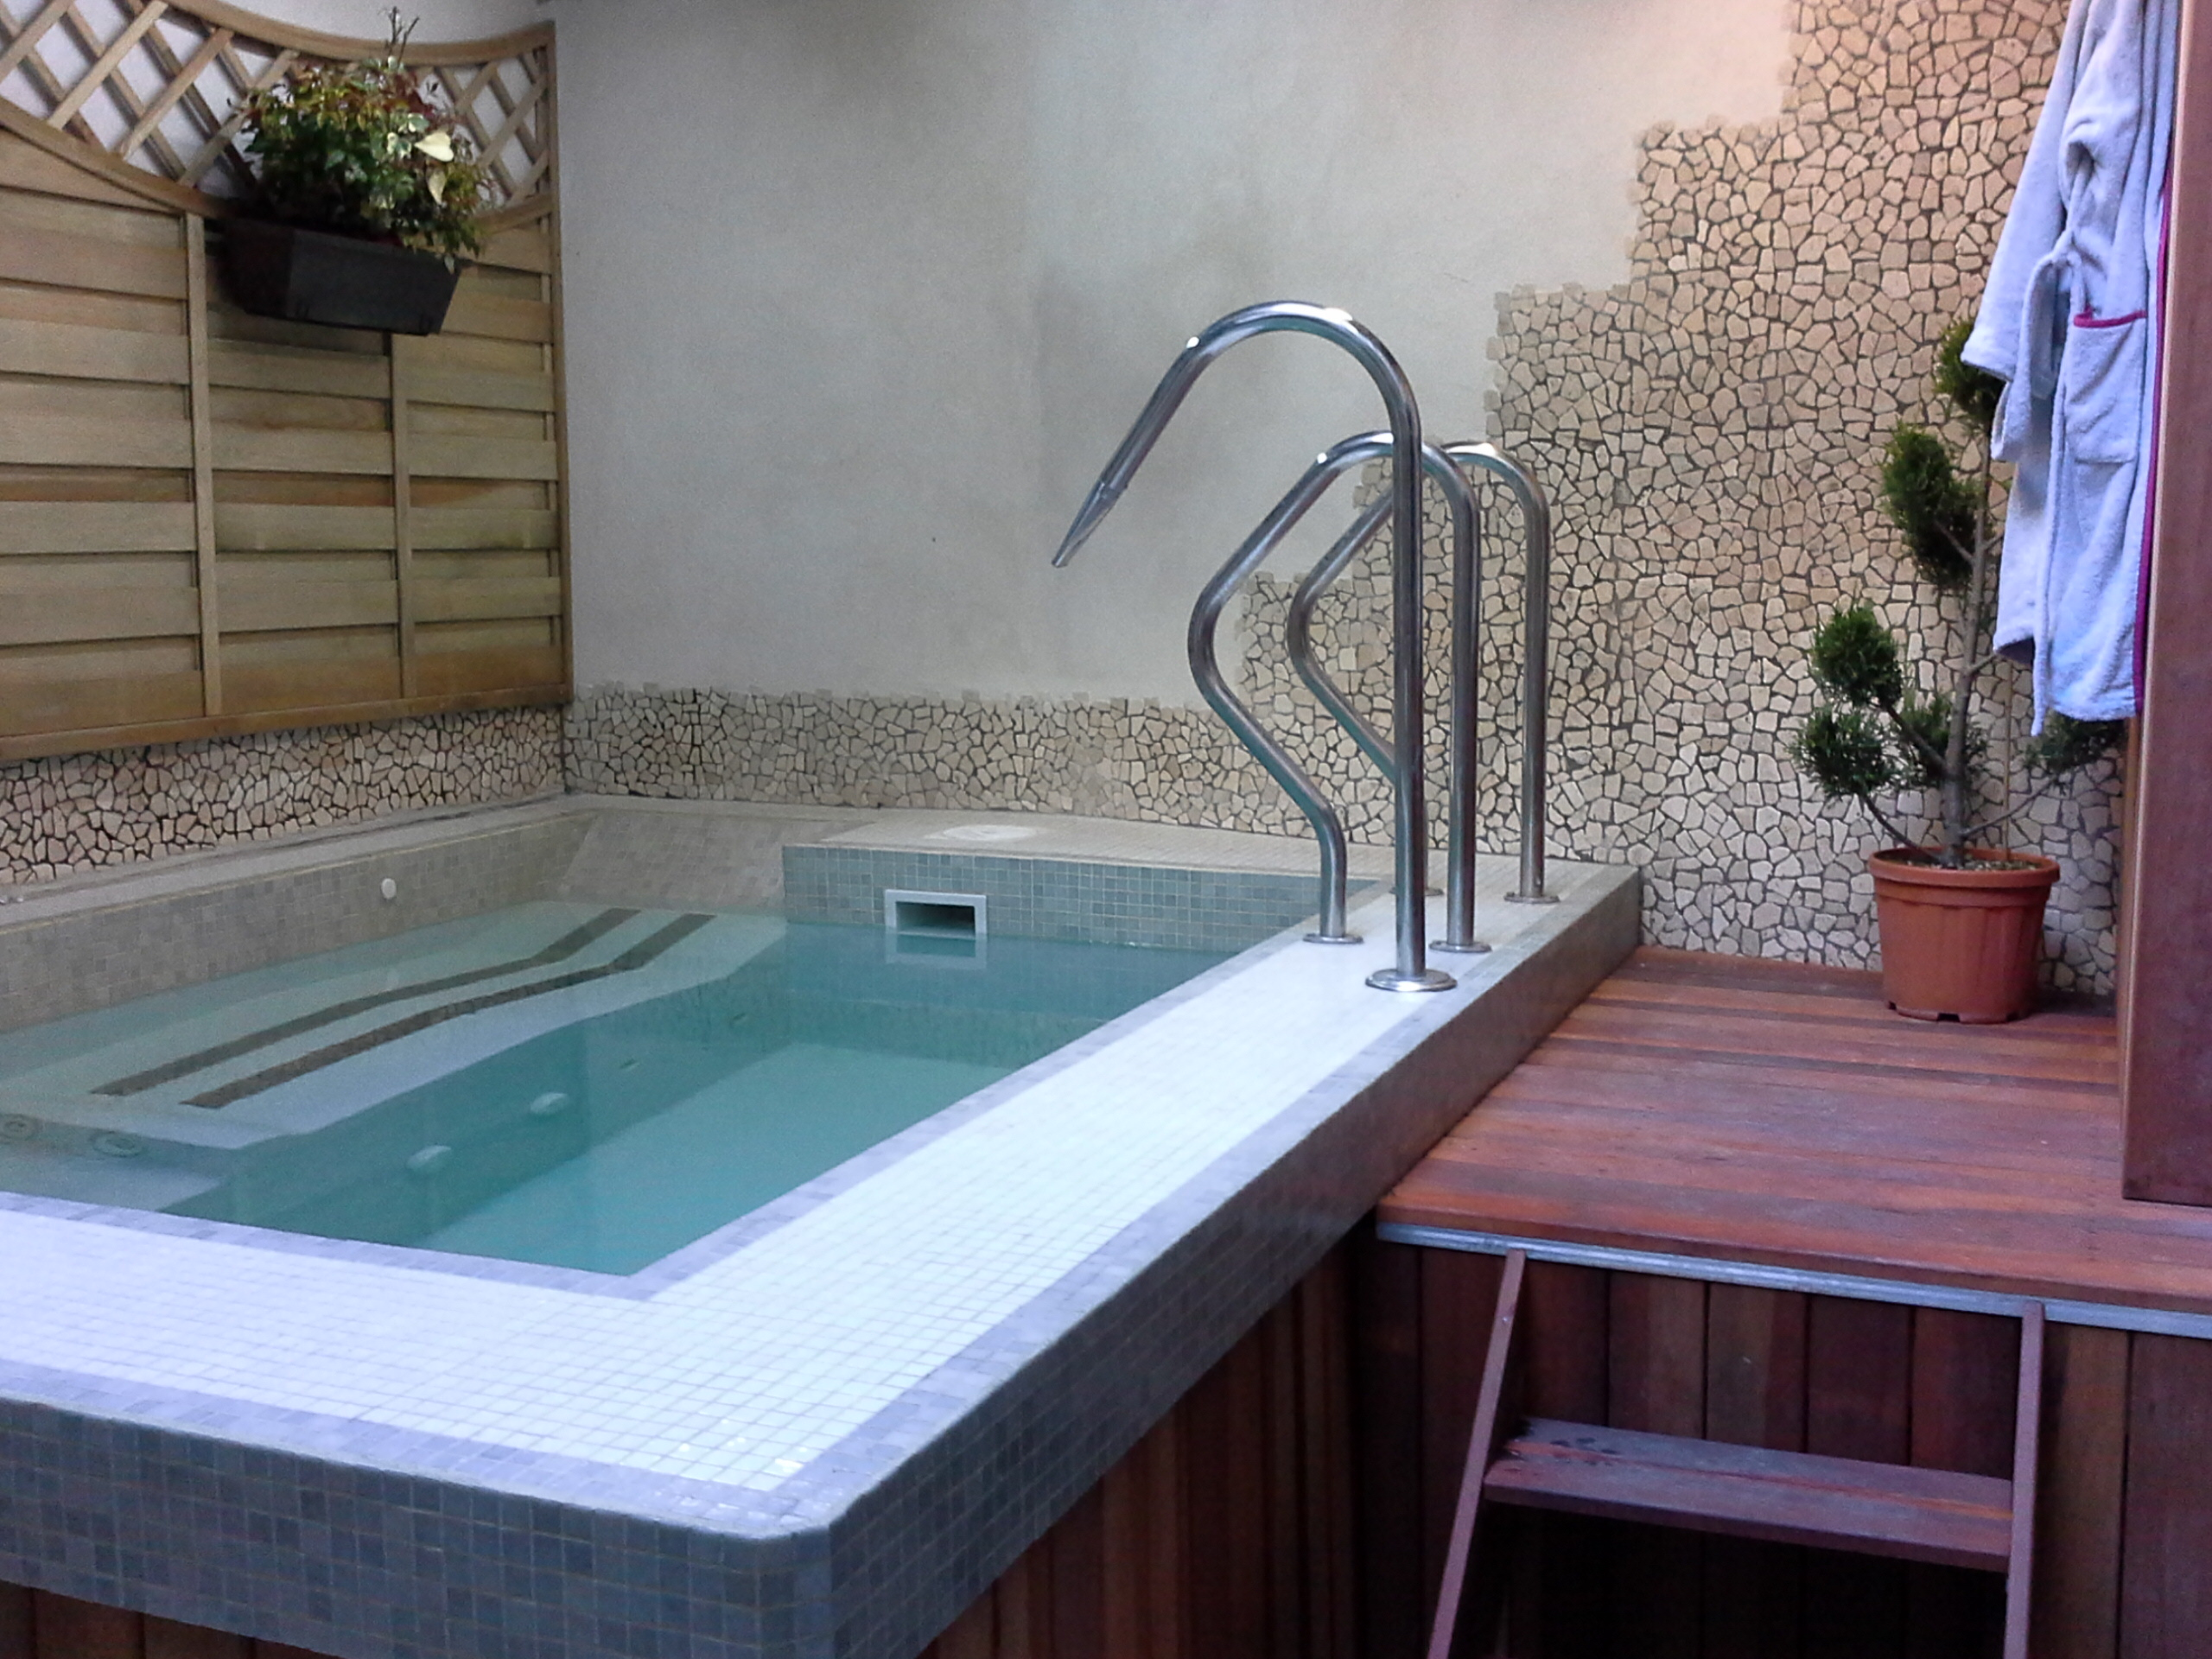 Spa beton Piscines et spas Bouquet Montauban